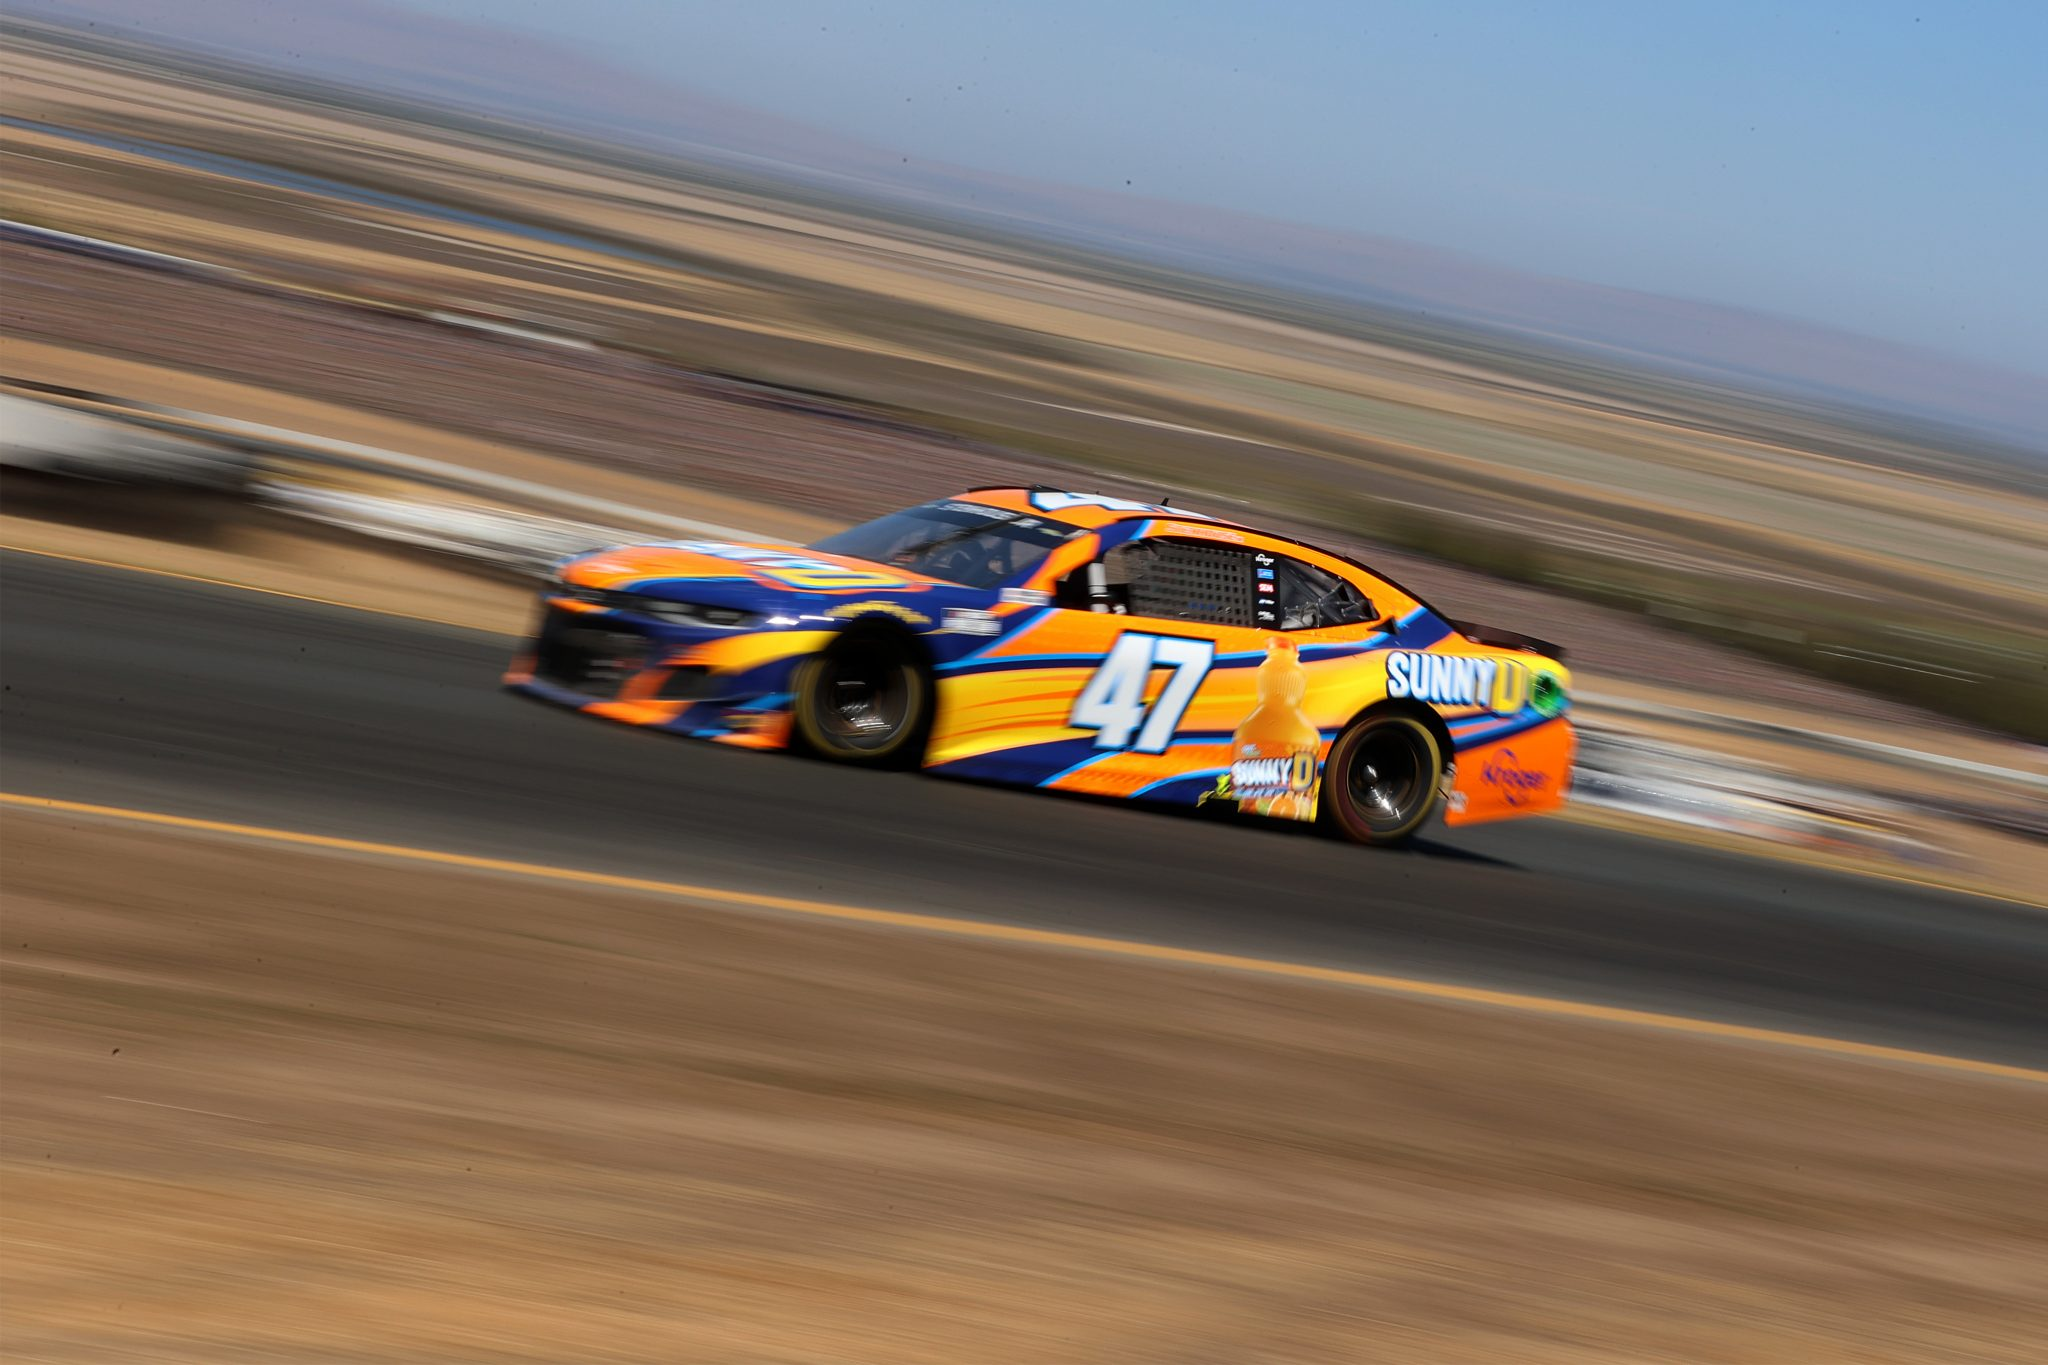 SONOMA, CALIFORNIA - JUNE 06: Ricky Stenhouse Jr., driver of the #47 SunnyD Chevrolet, drives during the NASCAR Cup Series Toyota/Save Mart 350 at Sonoma Raceway on June 06, 2021 in Sonoma, California. (Photo by Carmen Mandato/Getty Images) | Getty Images